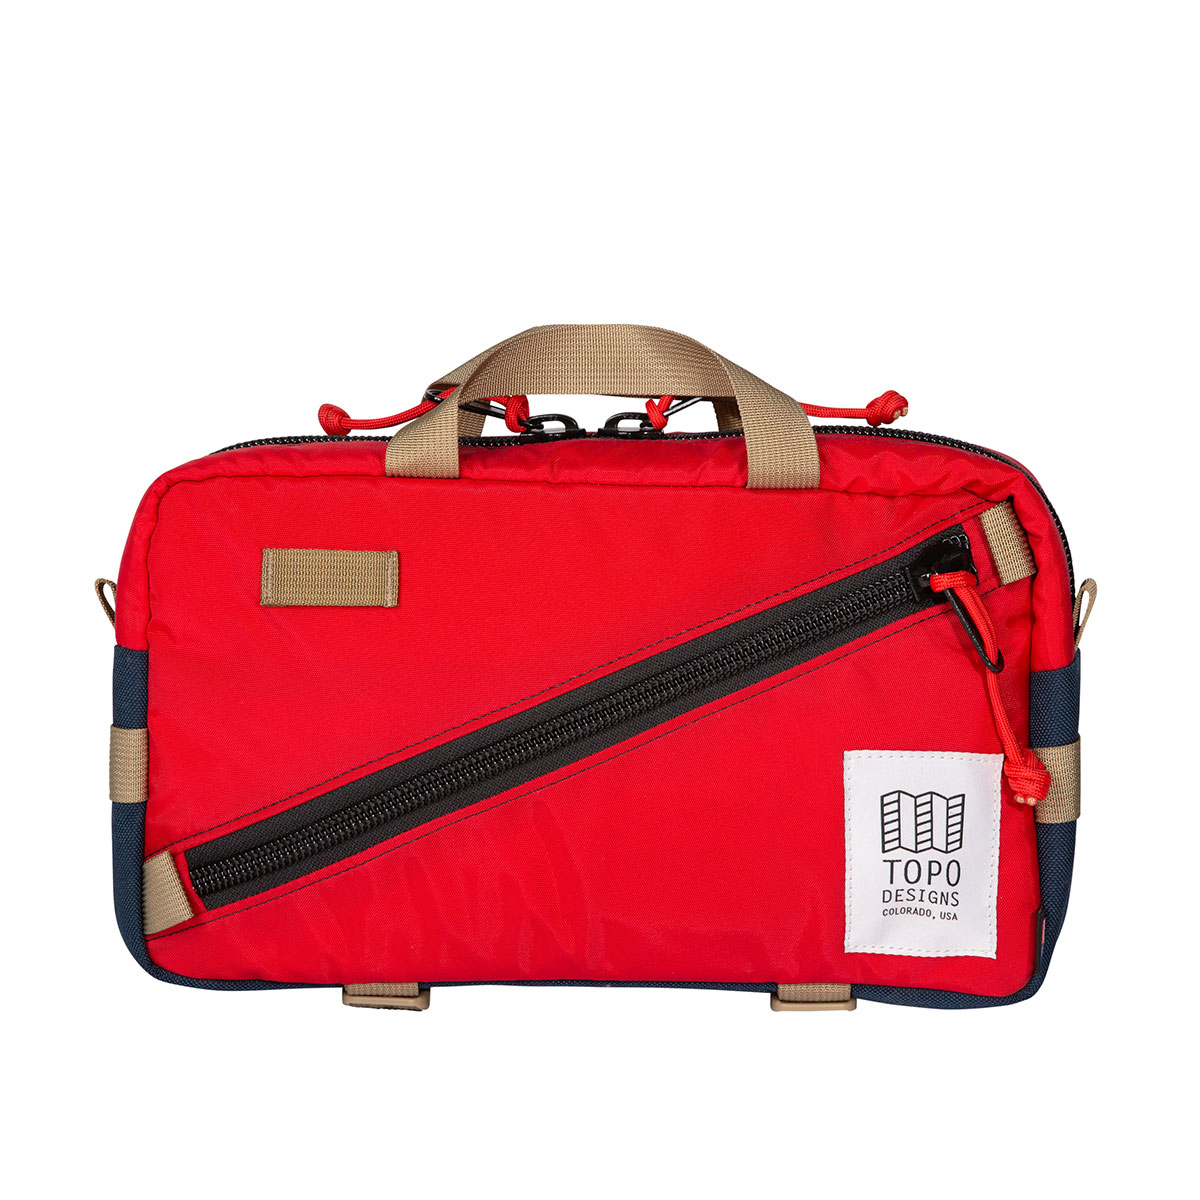 Topo Designs Quick Pack Red/Navy, a well-built, secure bag for travel